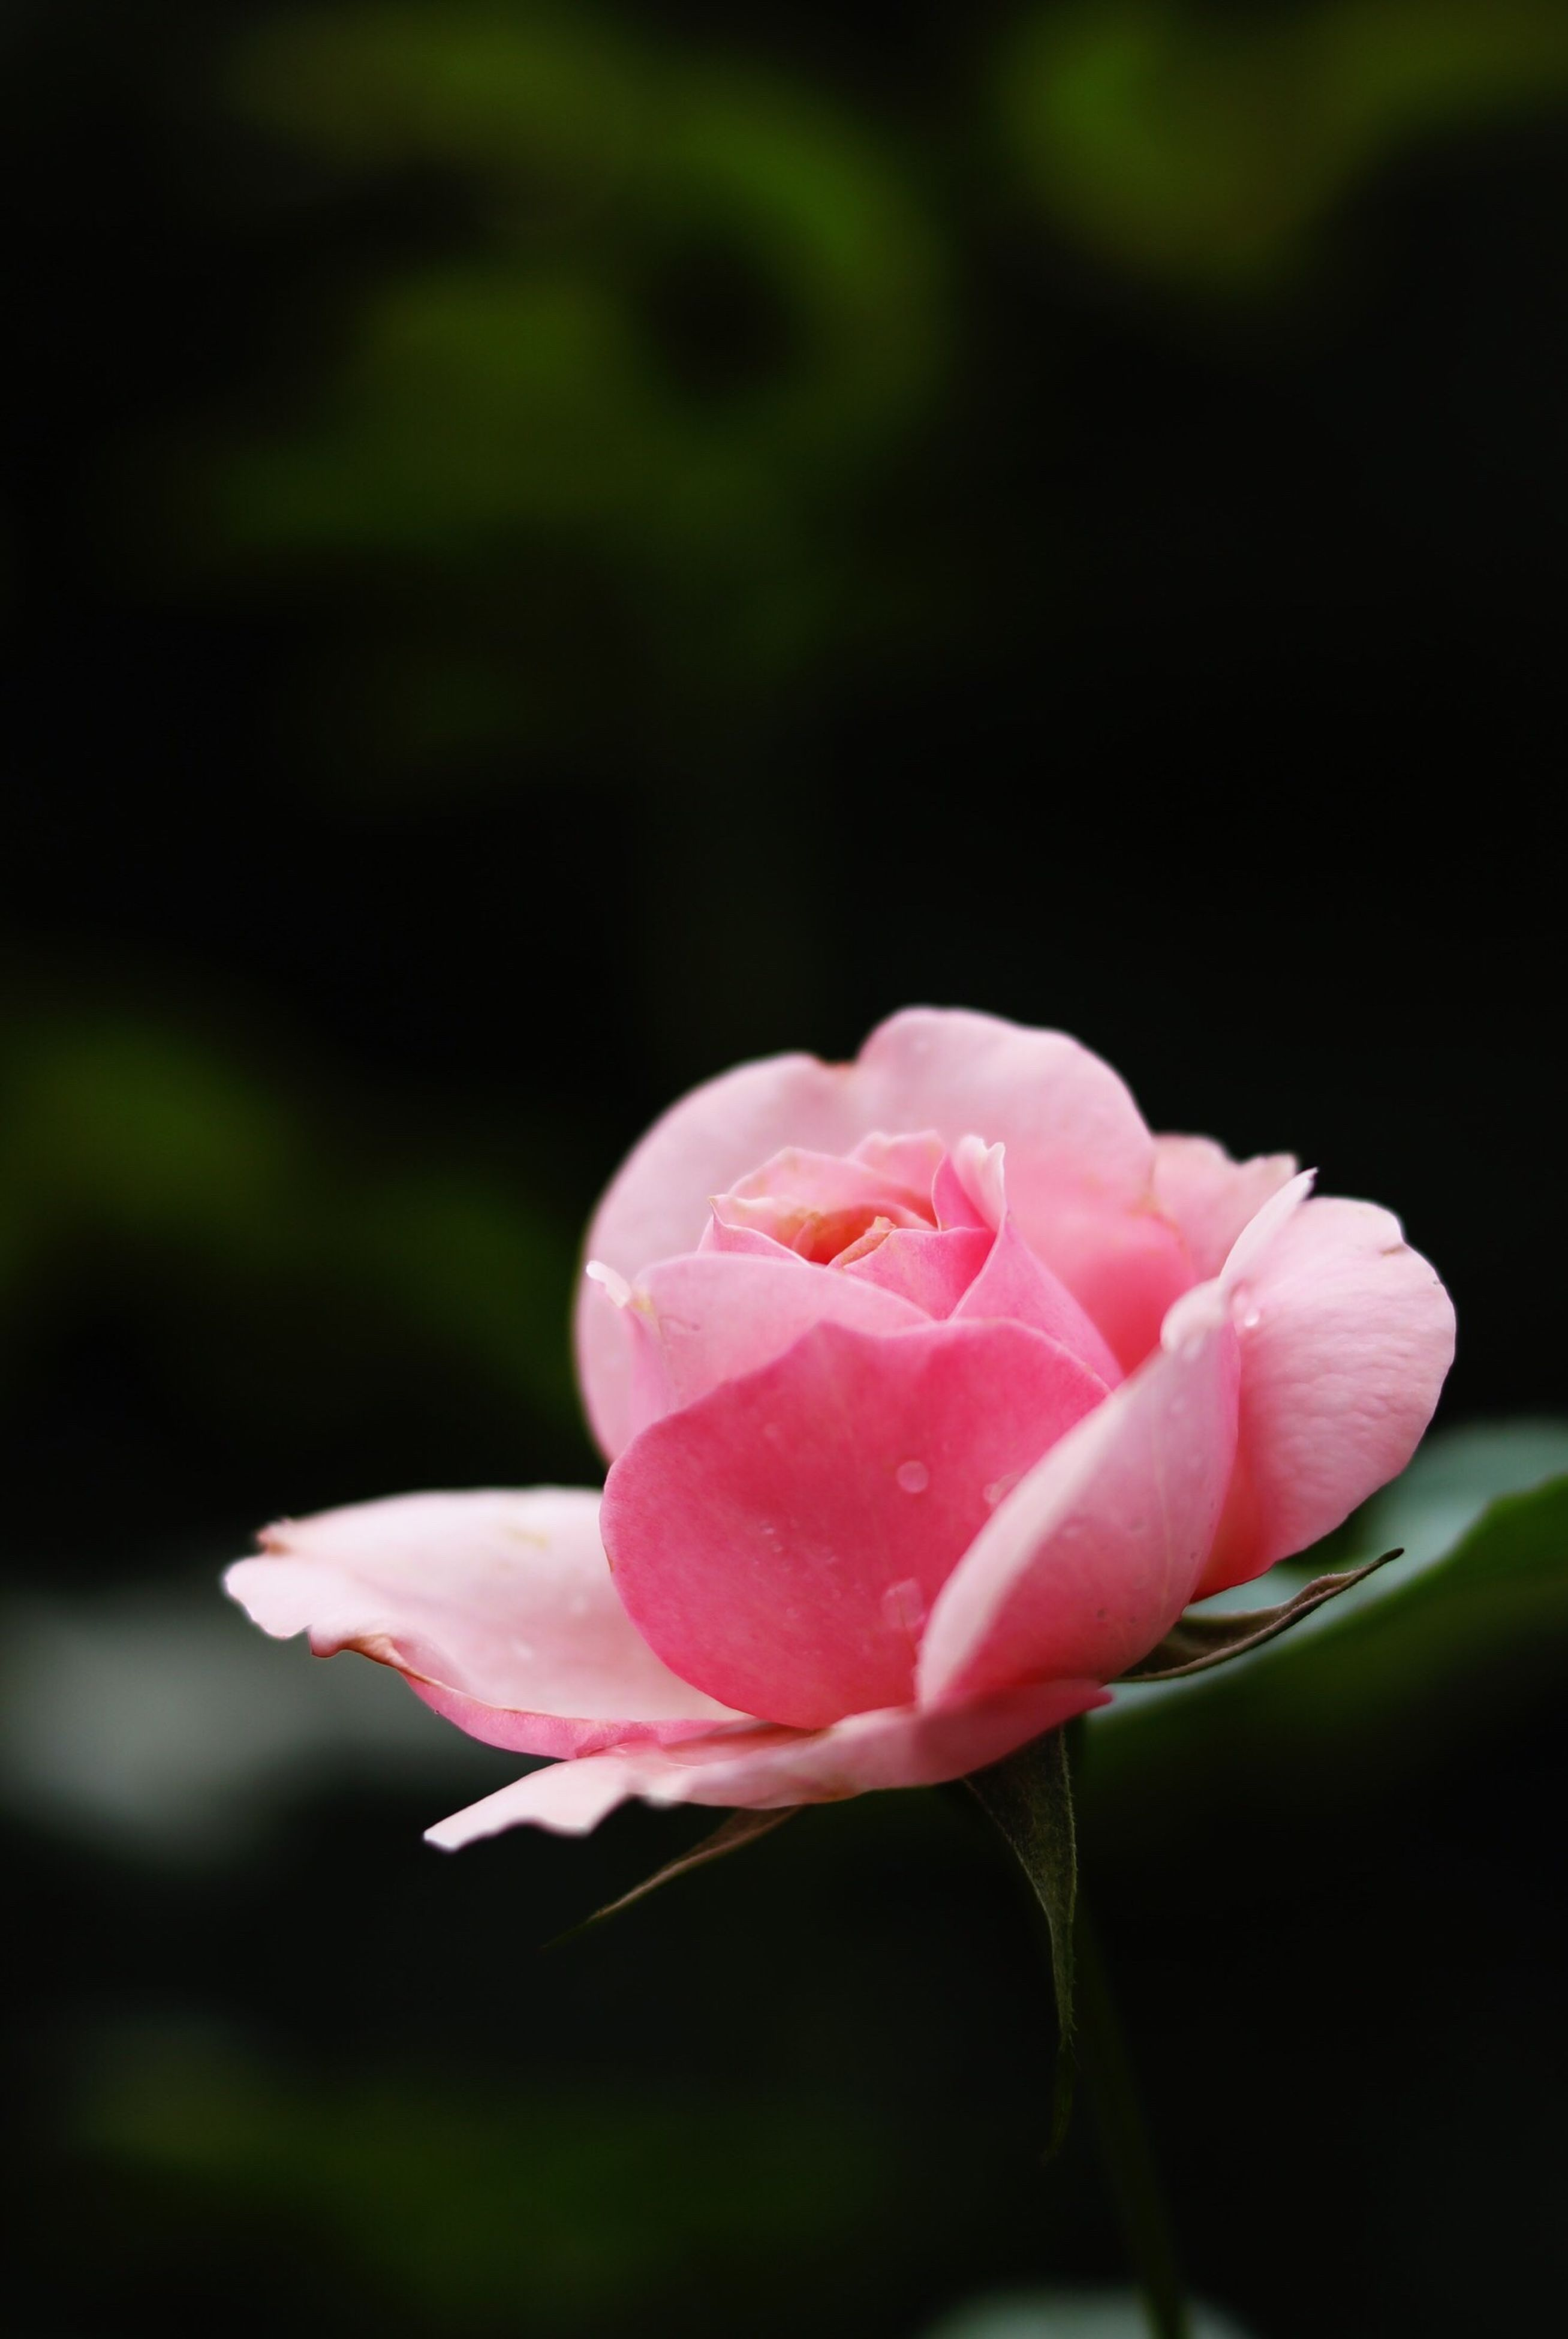 fragility, flower, freshness, petal, flower head, close-up, pink color, growth, season, beauty in nature, in bloom, springtime, nature, blossom, focus on foreground, single flower, stem, water, botany, vibrant color, softness, day, dew, outdoors, soft focus, no people, rose petals